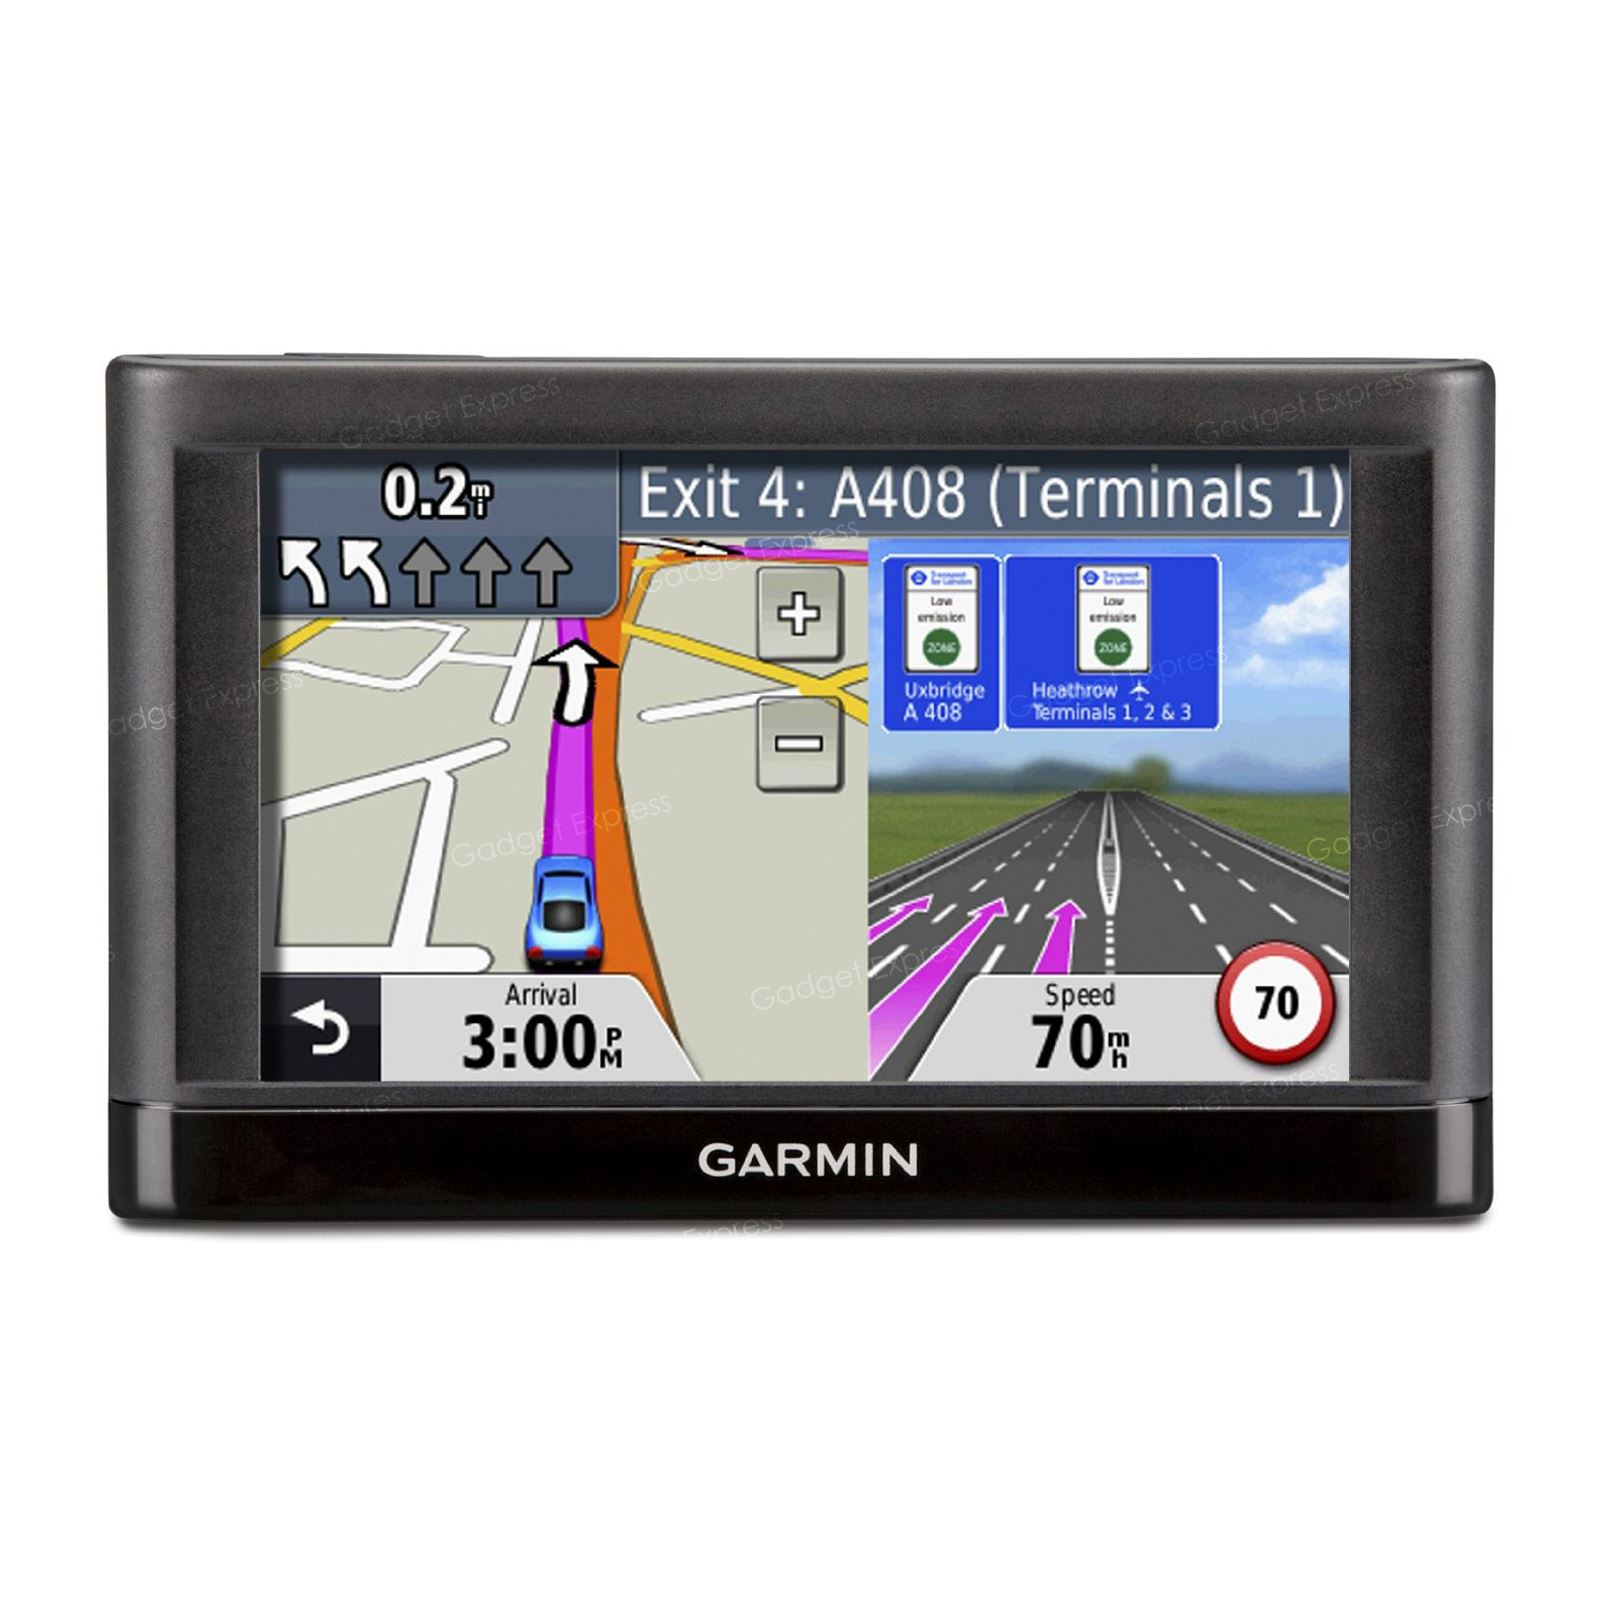 garmin nuvi 42 satellite navigation system satnav gps uk. Black Bedroom Furniture Sets. Home Design Ideas